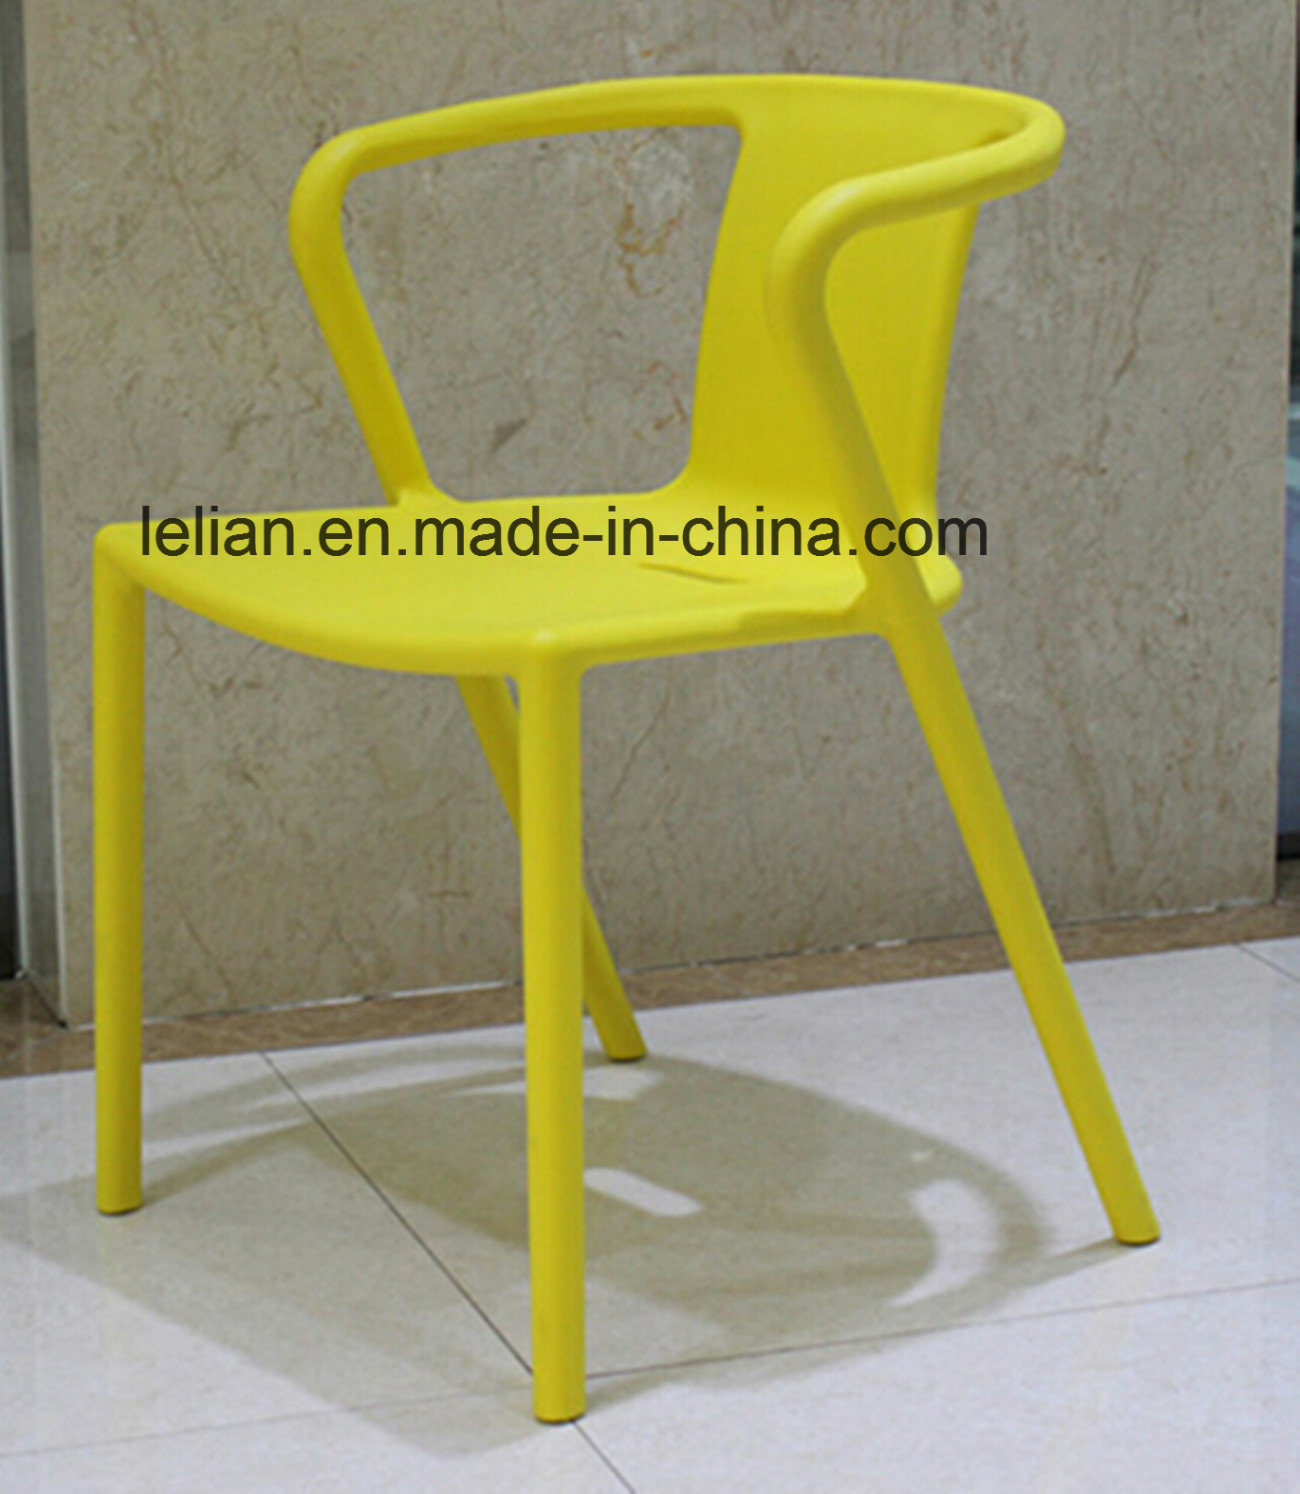 Modern Design High Quatlity Plastic PP Eames Chair for Sale (LL-0069)